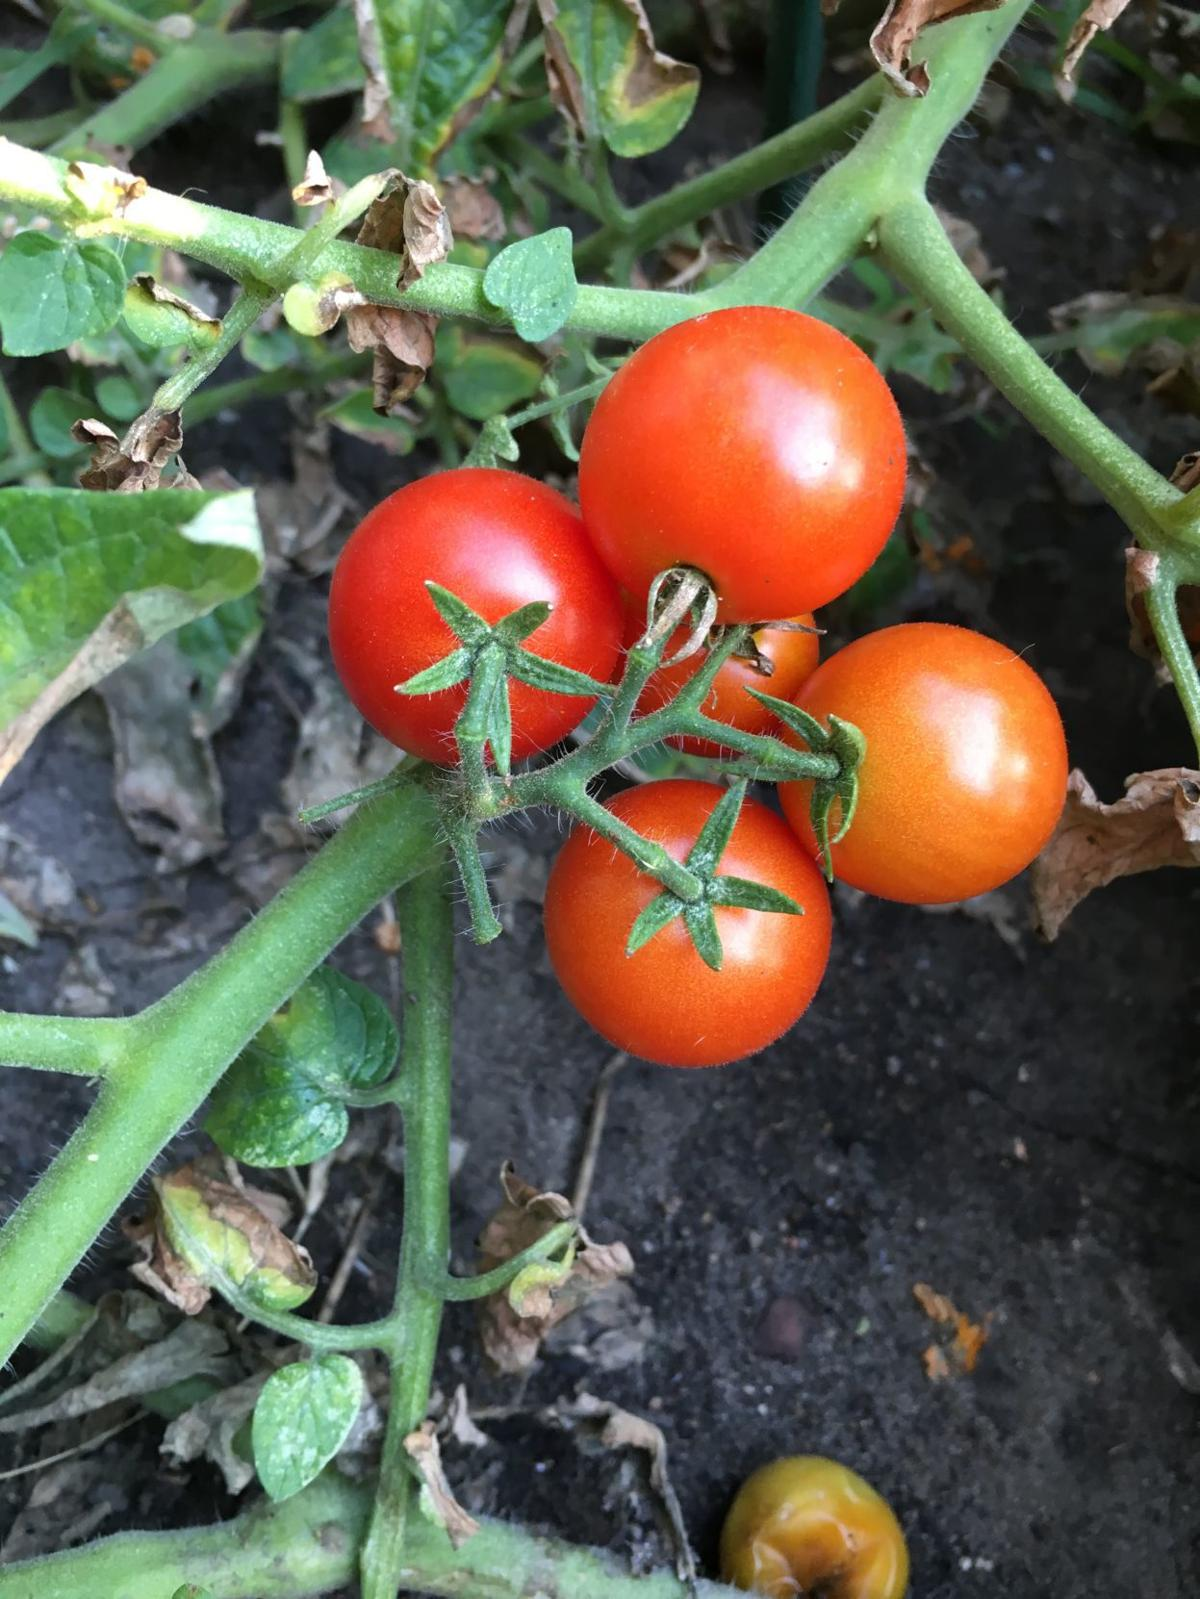 Tomatoes for salsa or pizzza